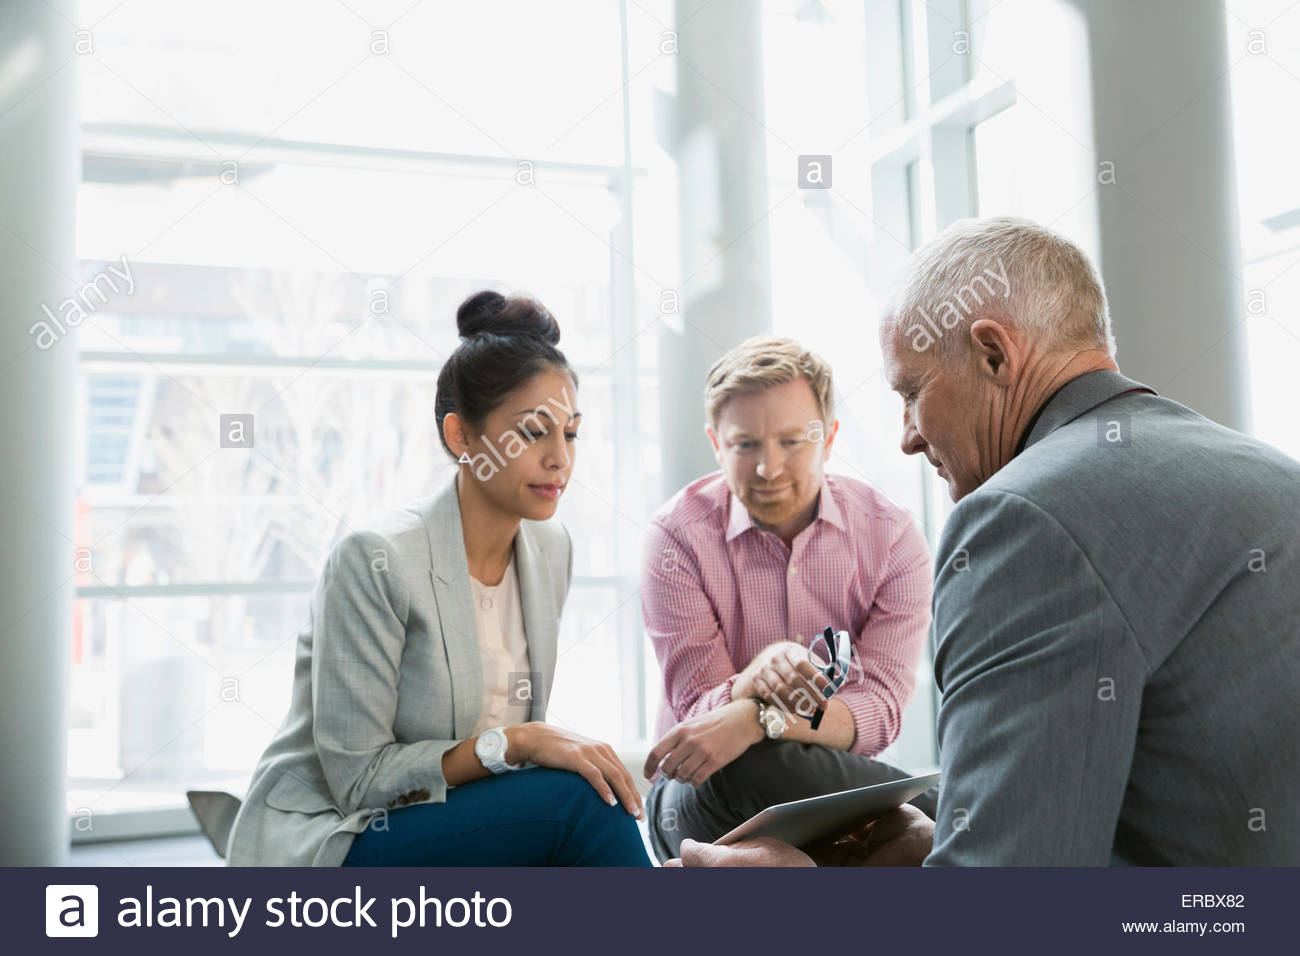 Business people using digital tablet in lobby - Stock Image